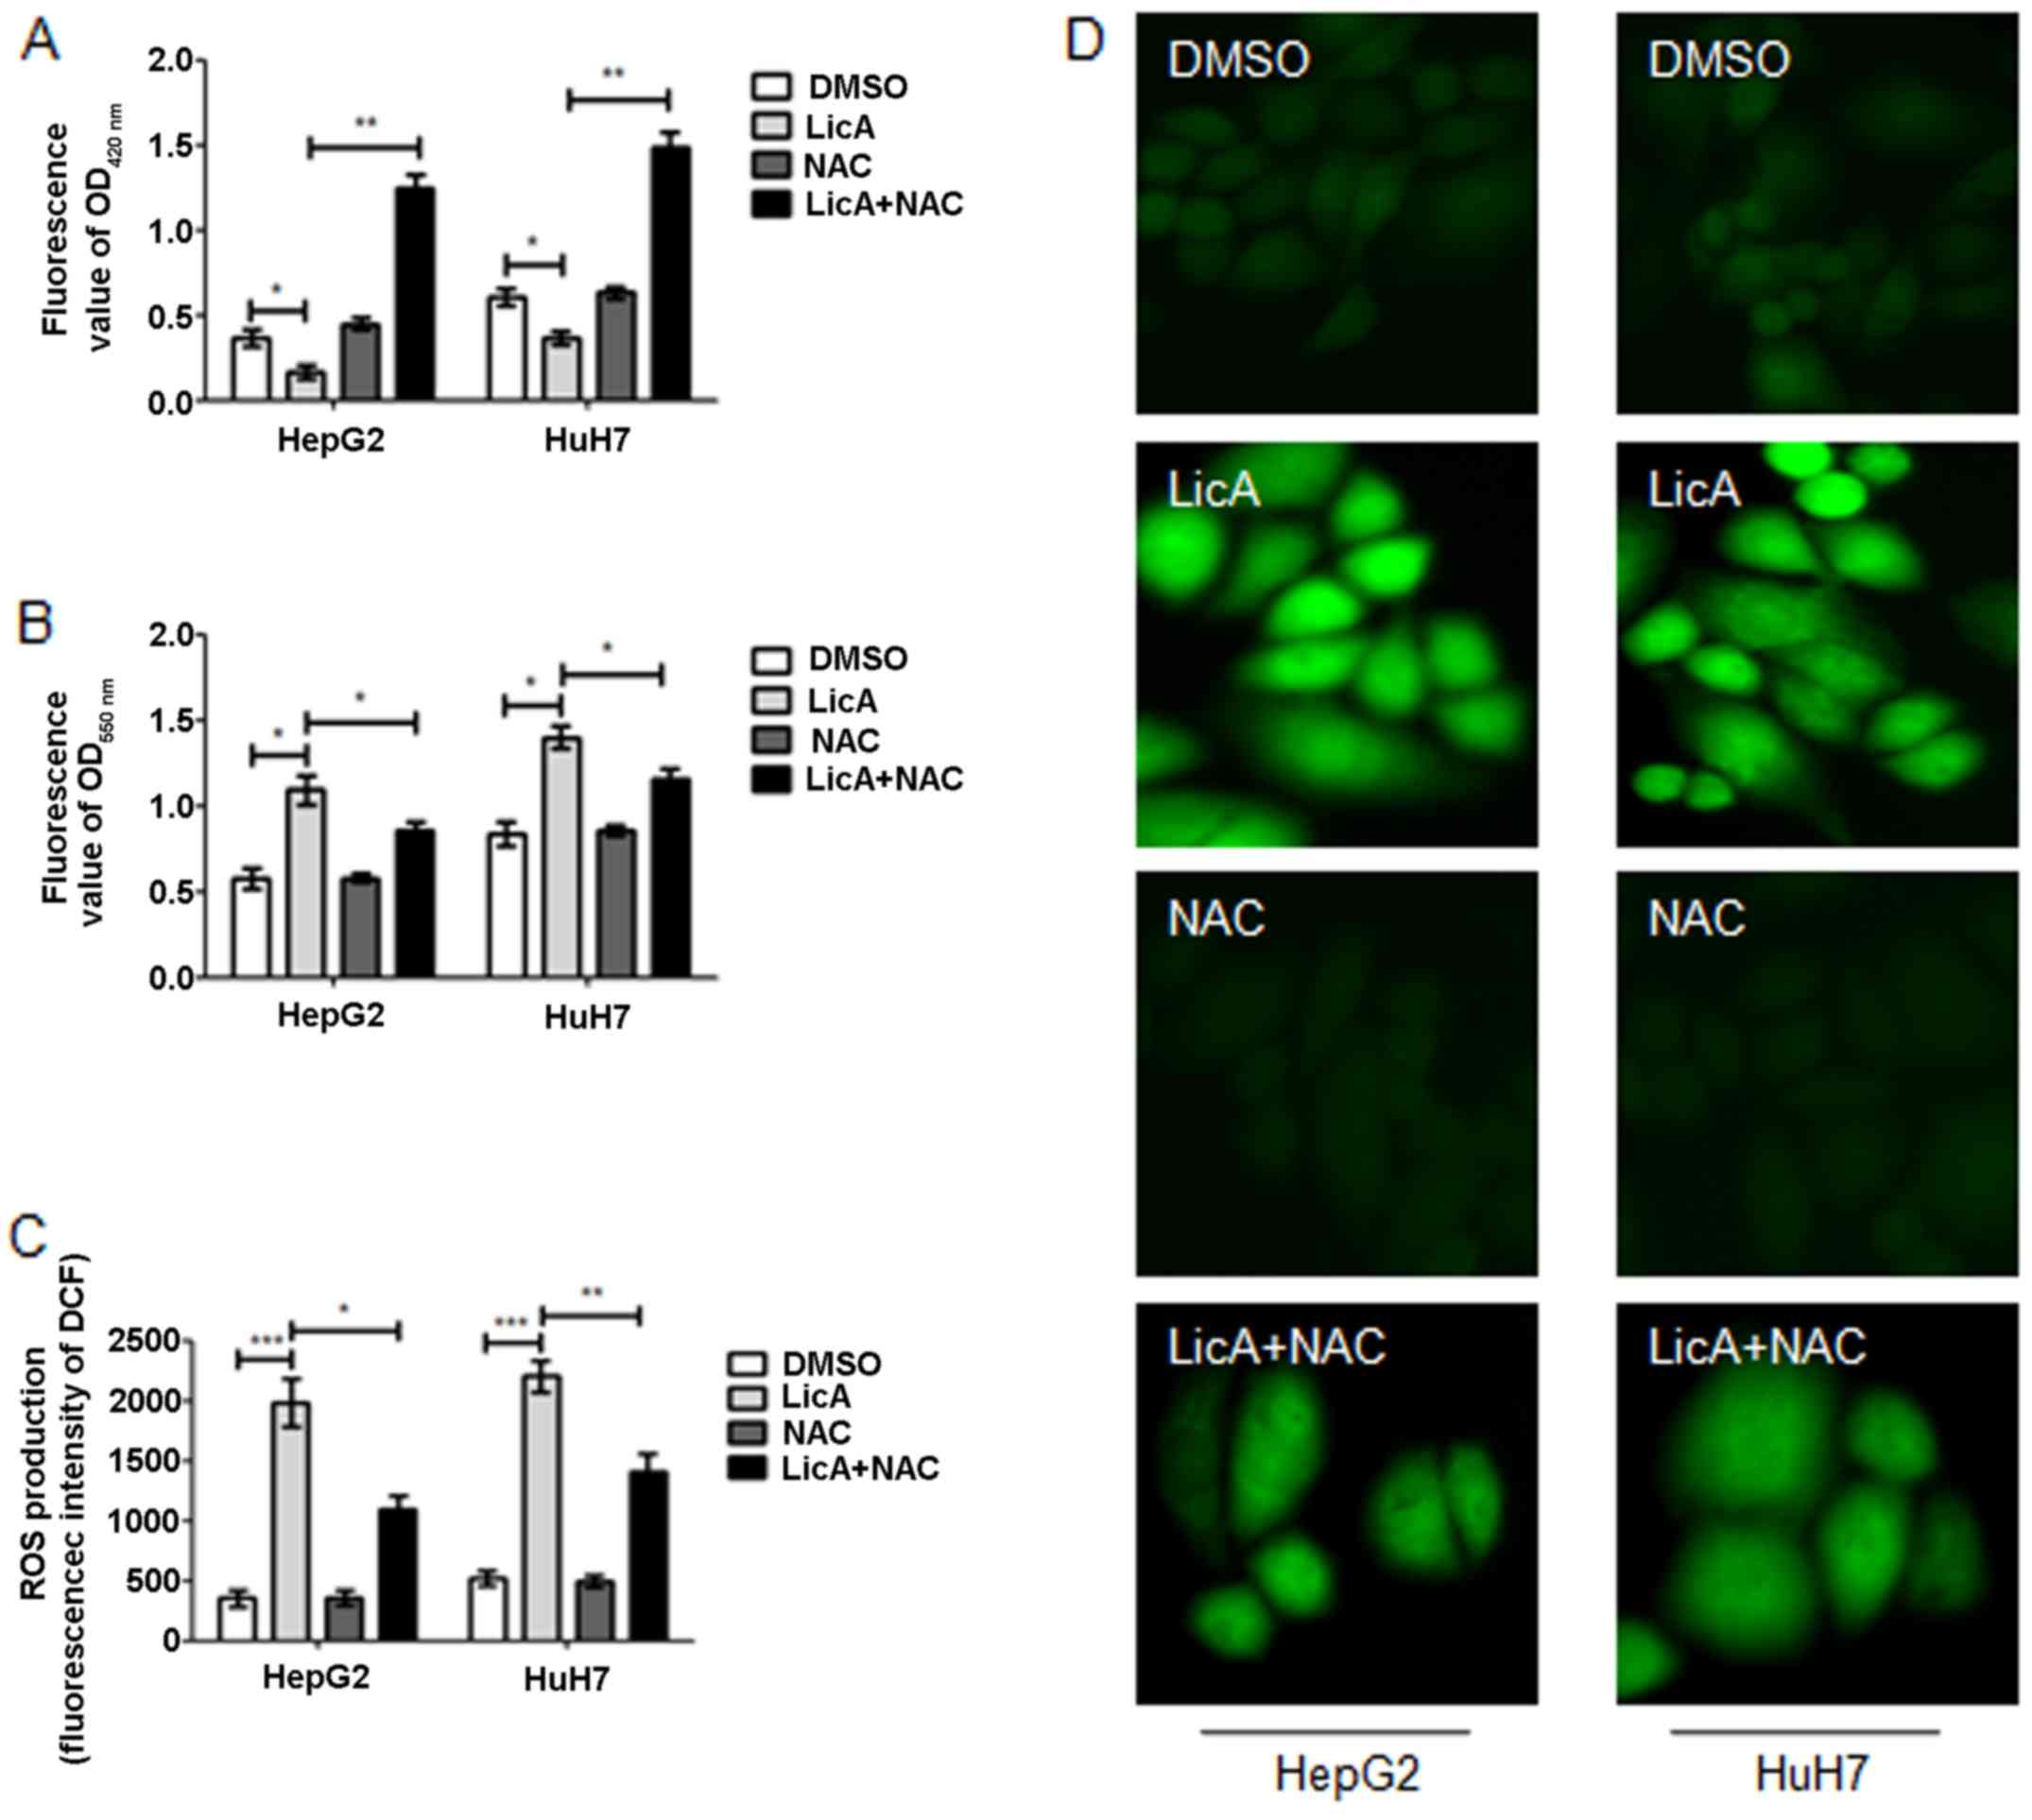 LicA induces autophagy through ULK1/Atg13 and ROS pathway in human